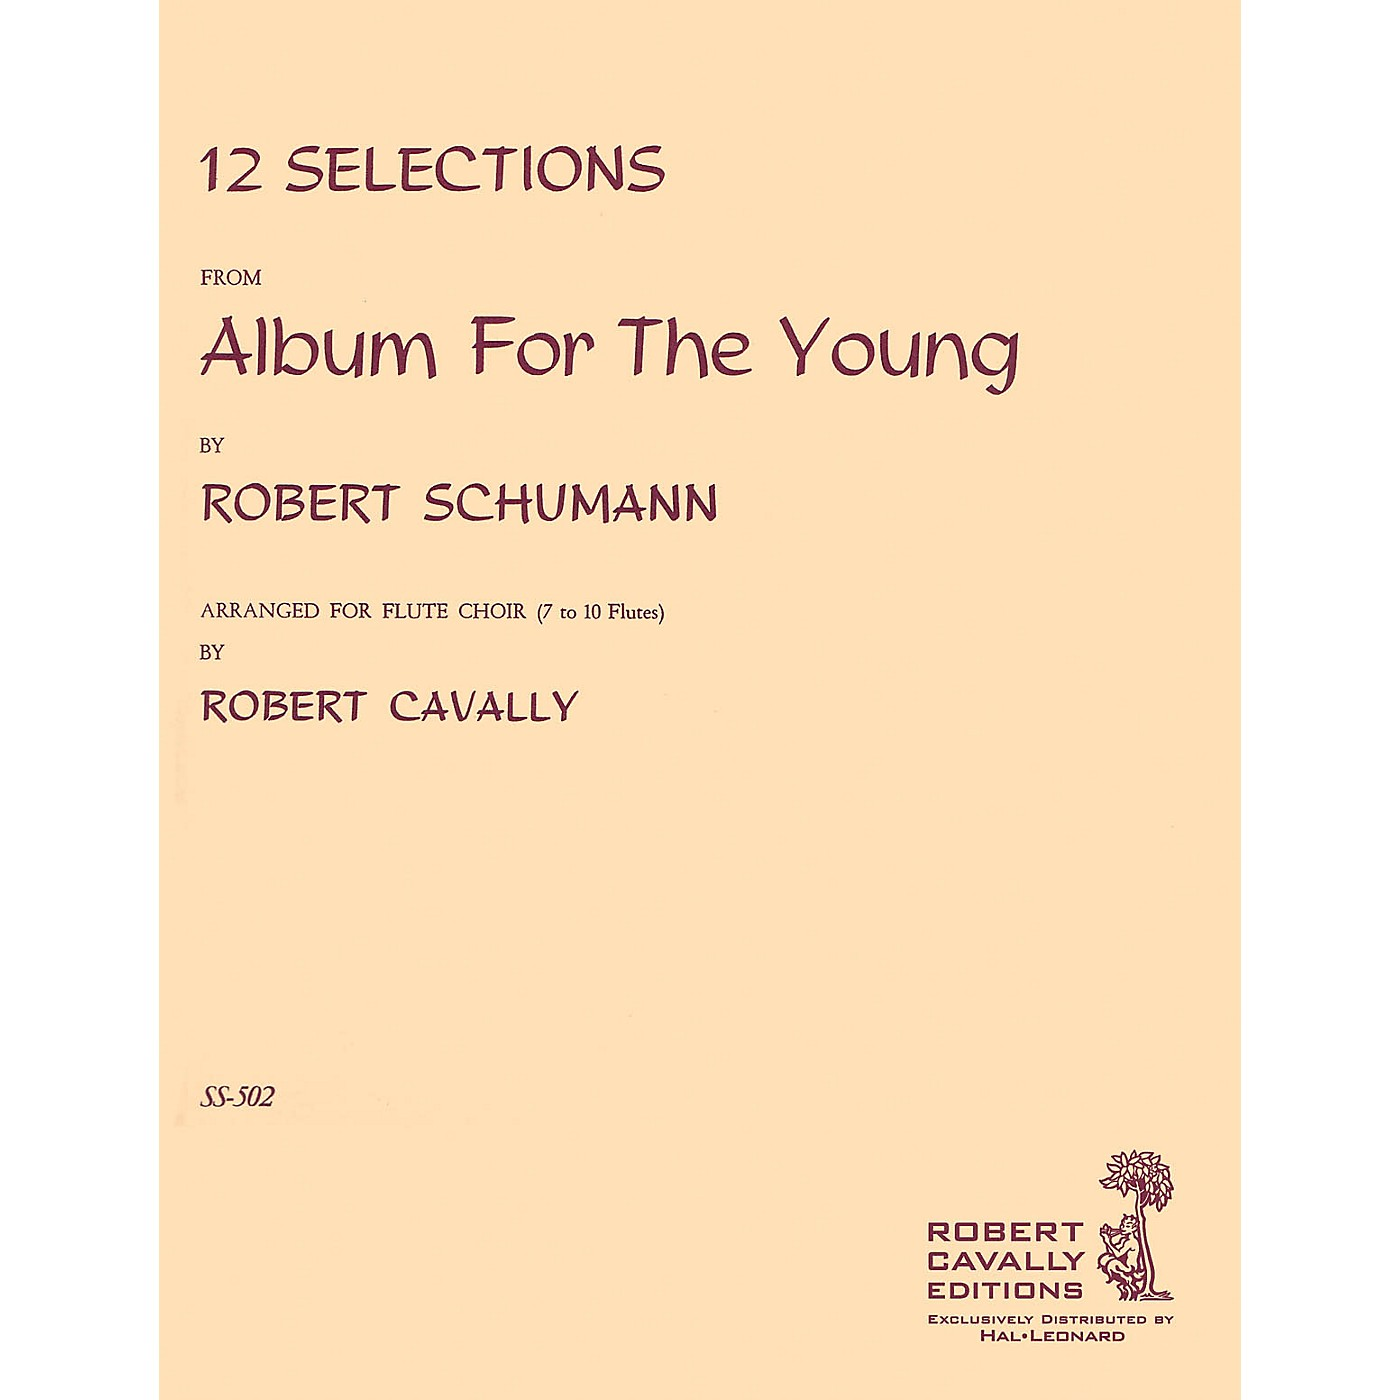 Cavally Editions Album for the Young (12 Selections for Flute Choir) Robert Cavally Editions Series by Robert Cavally thumbnail